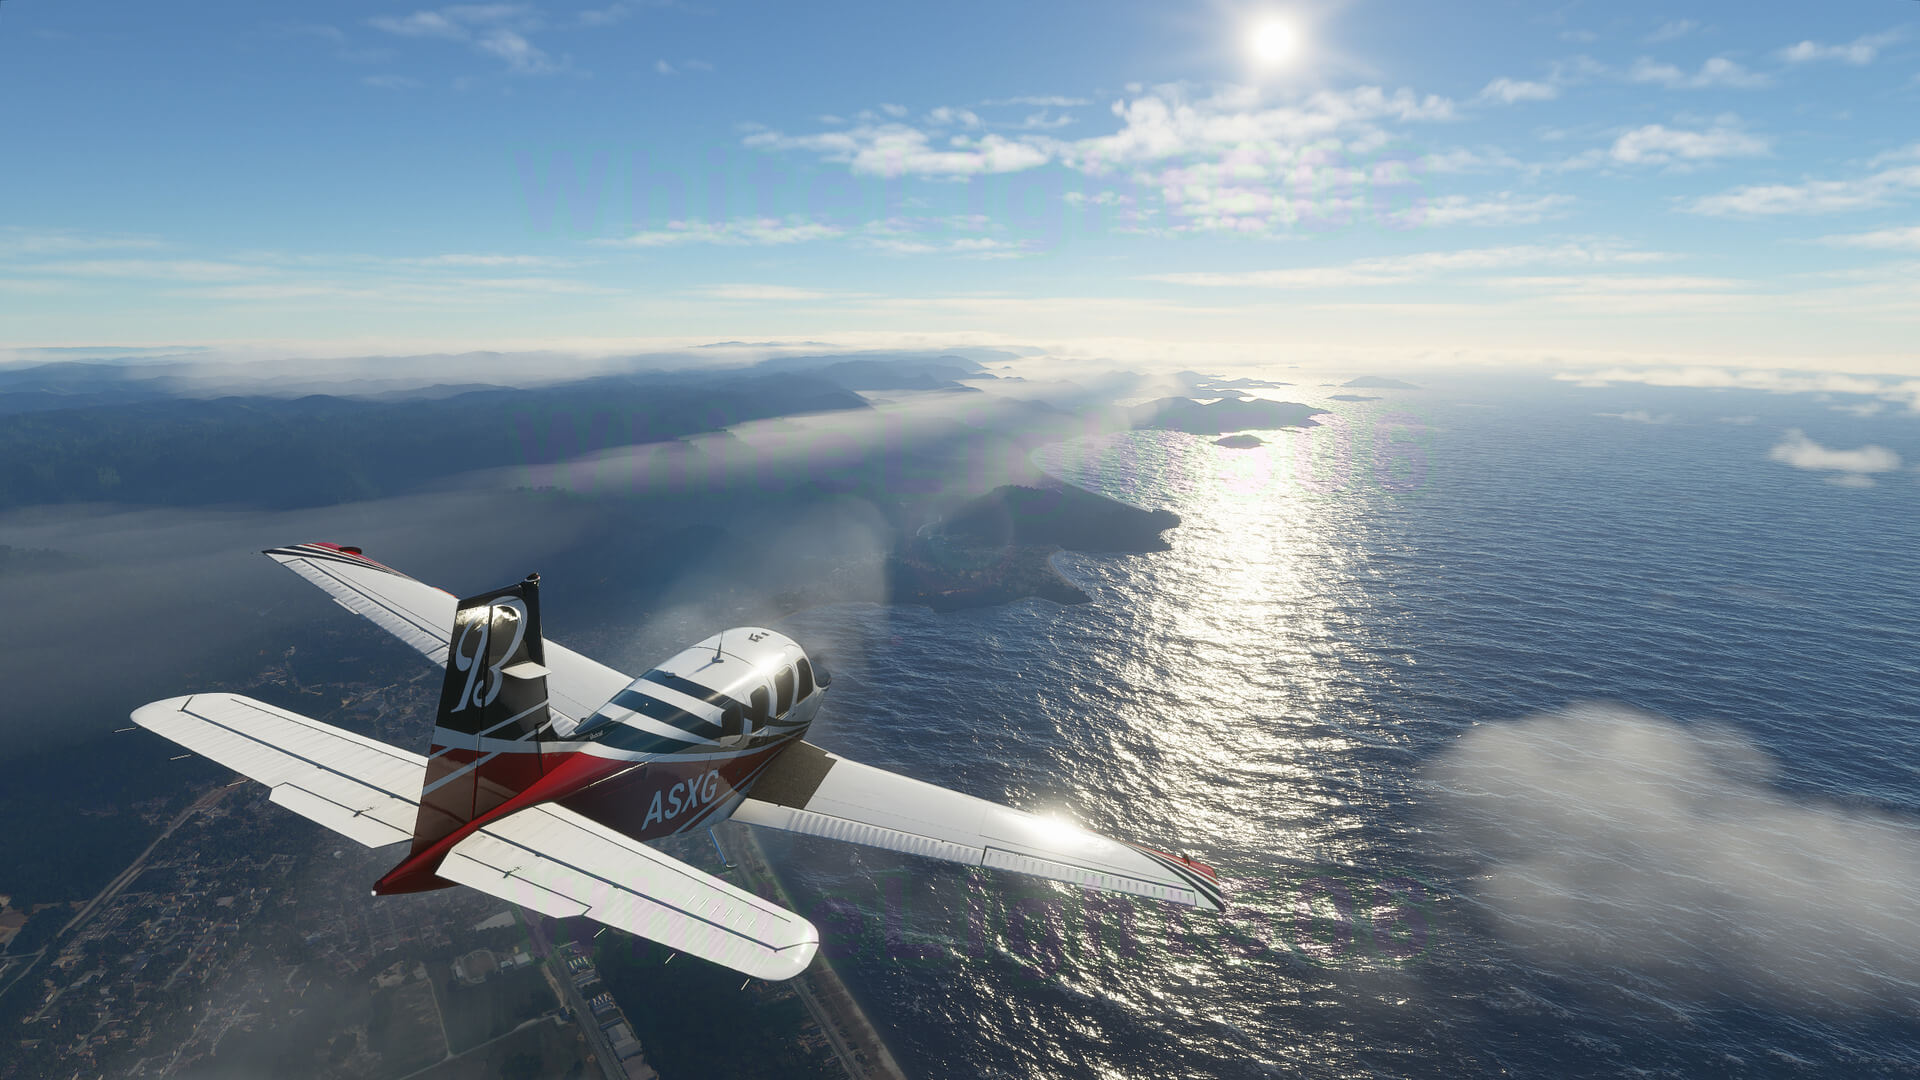 Microsoft Flight Simulator captura 6 avion y el mar